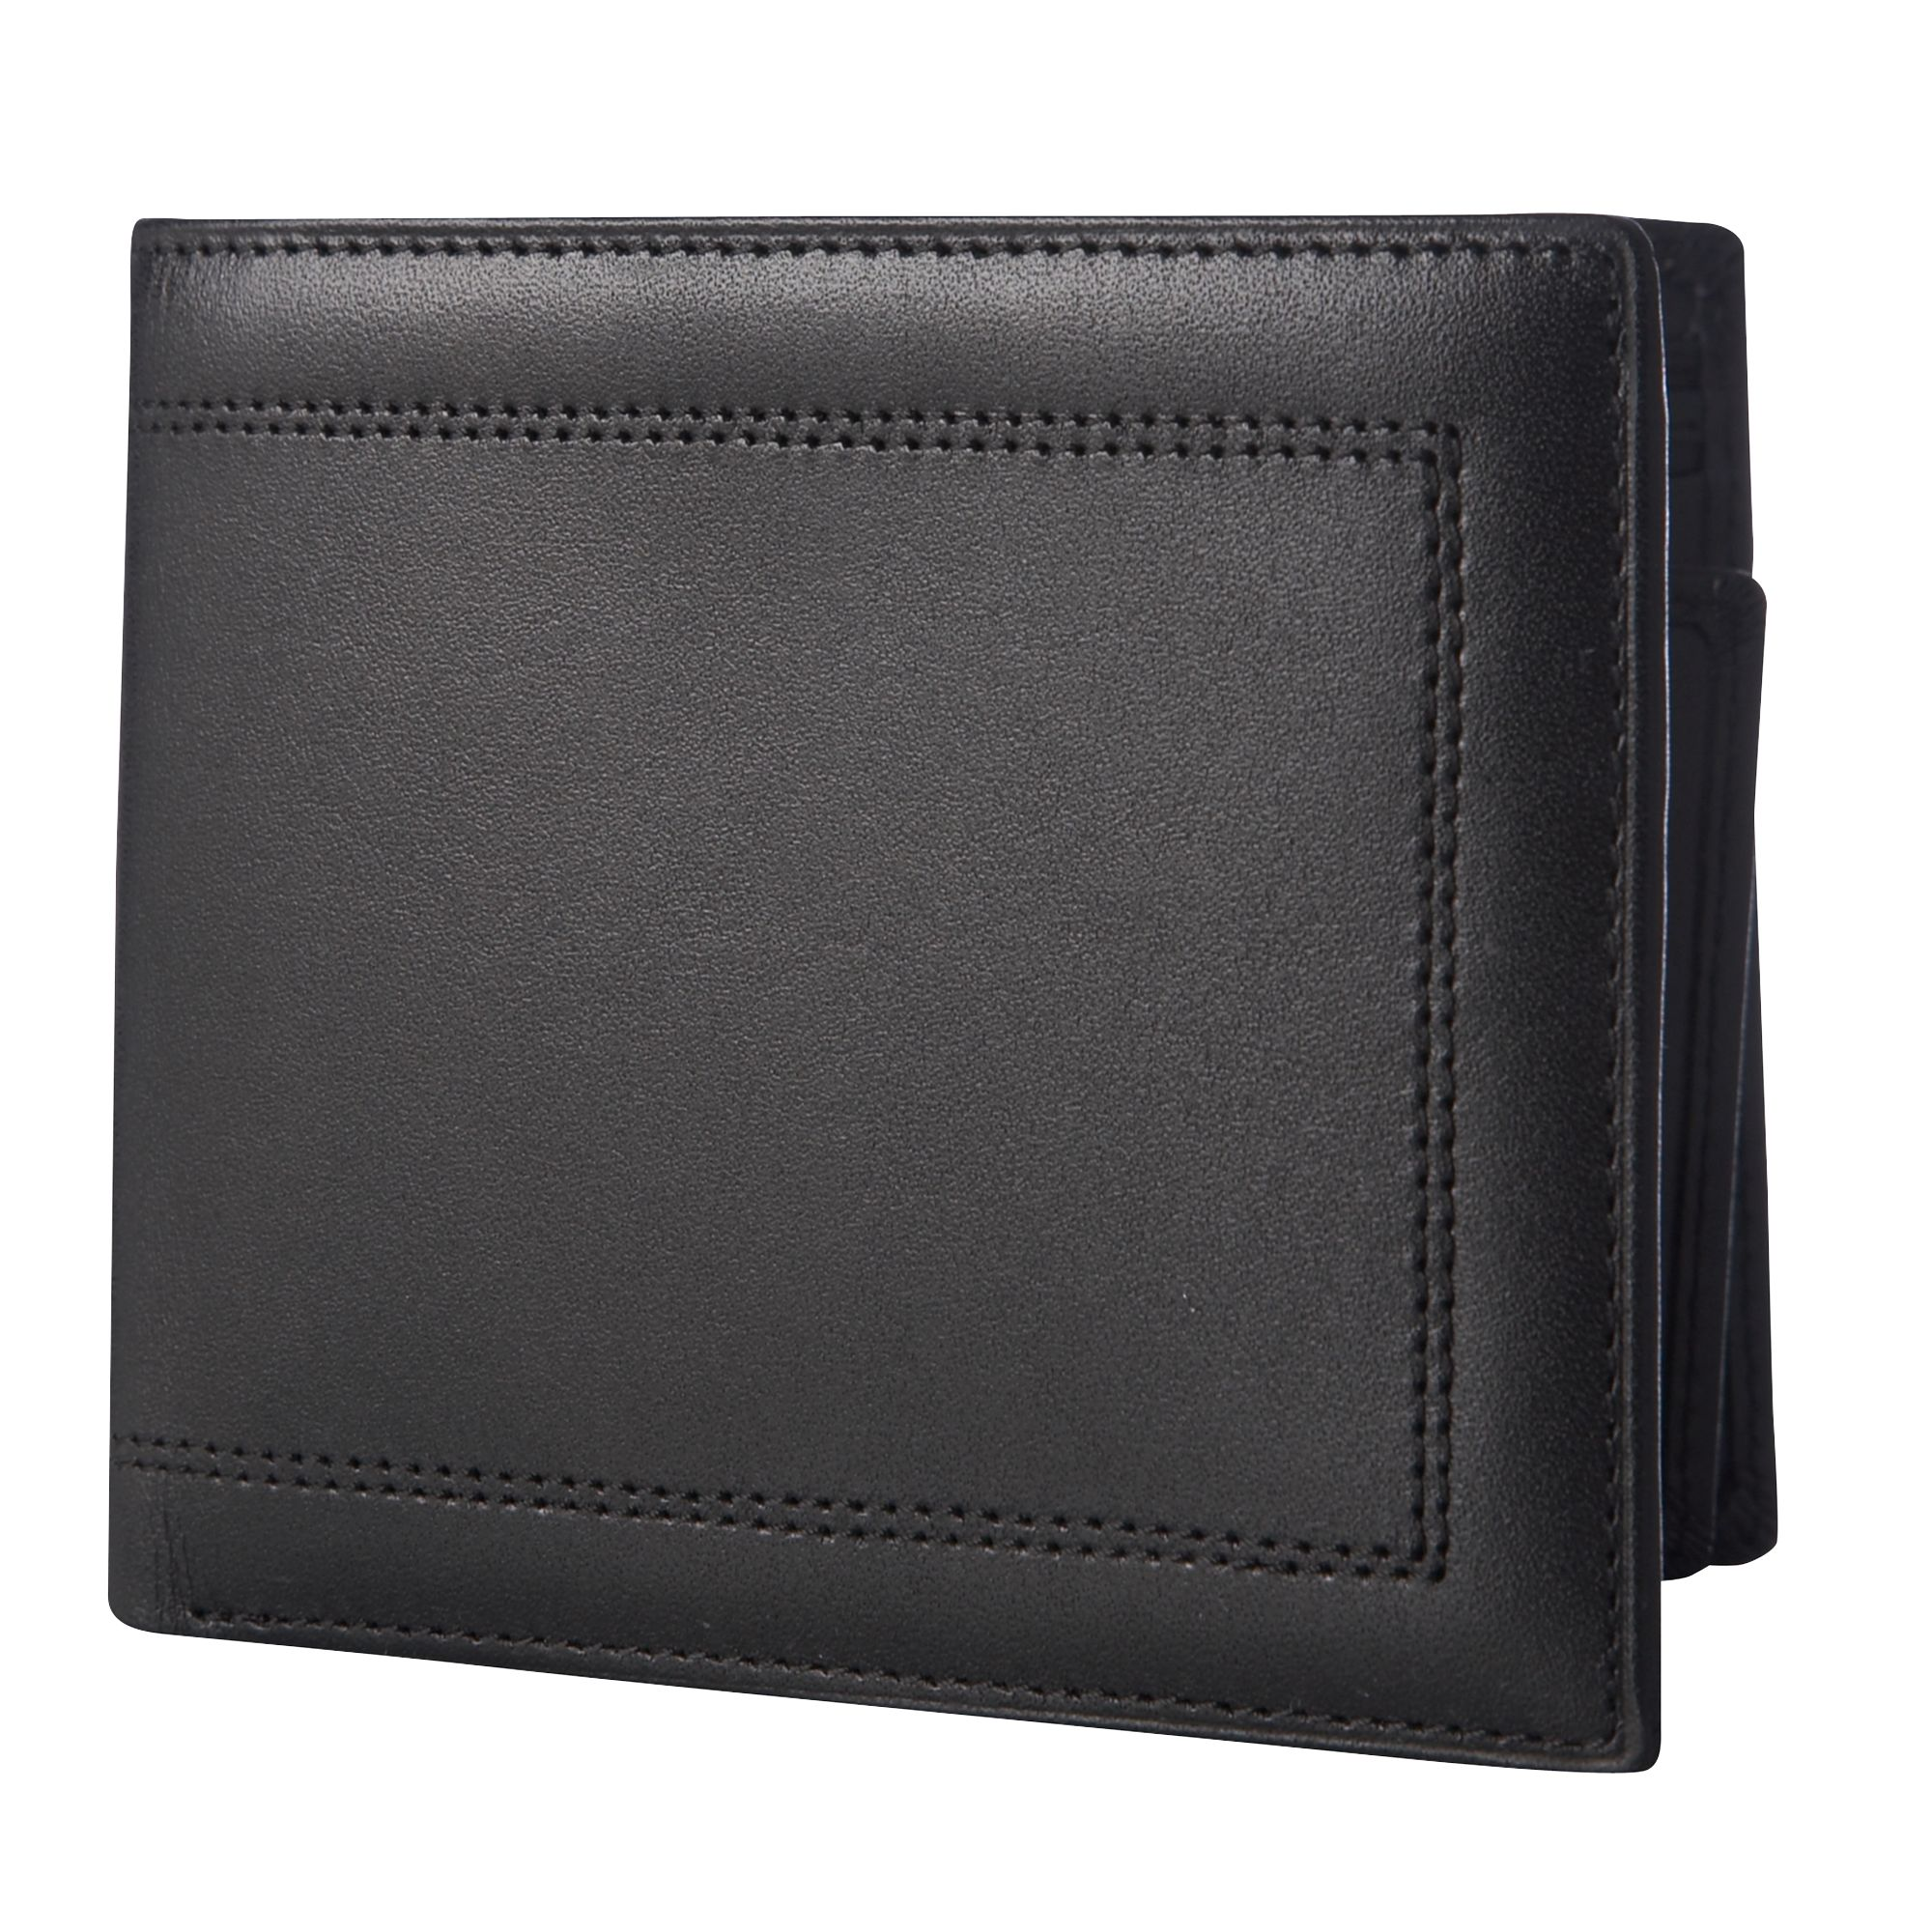 Kenneth Cole Embossed logo billfold wallet product image